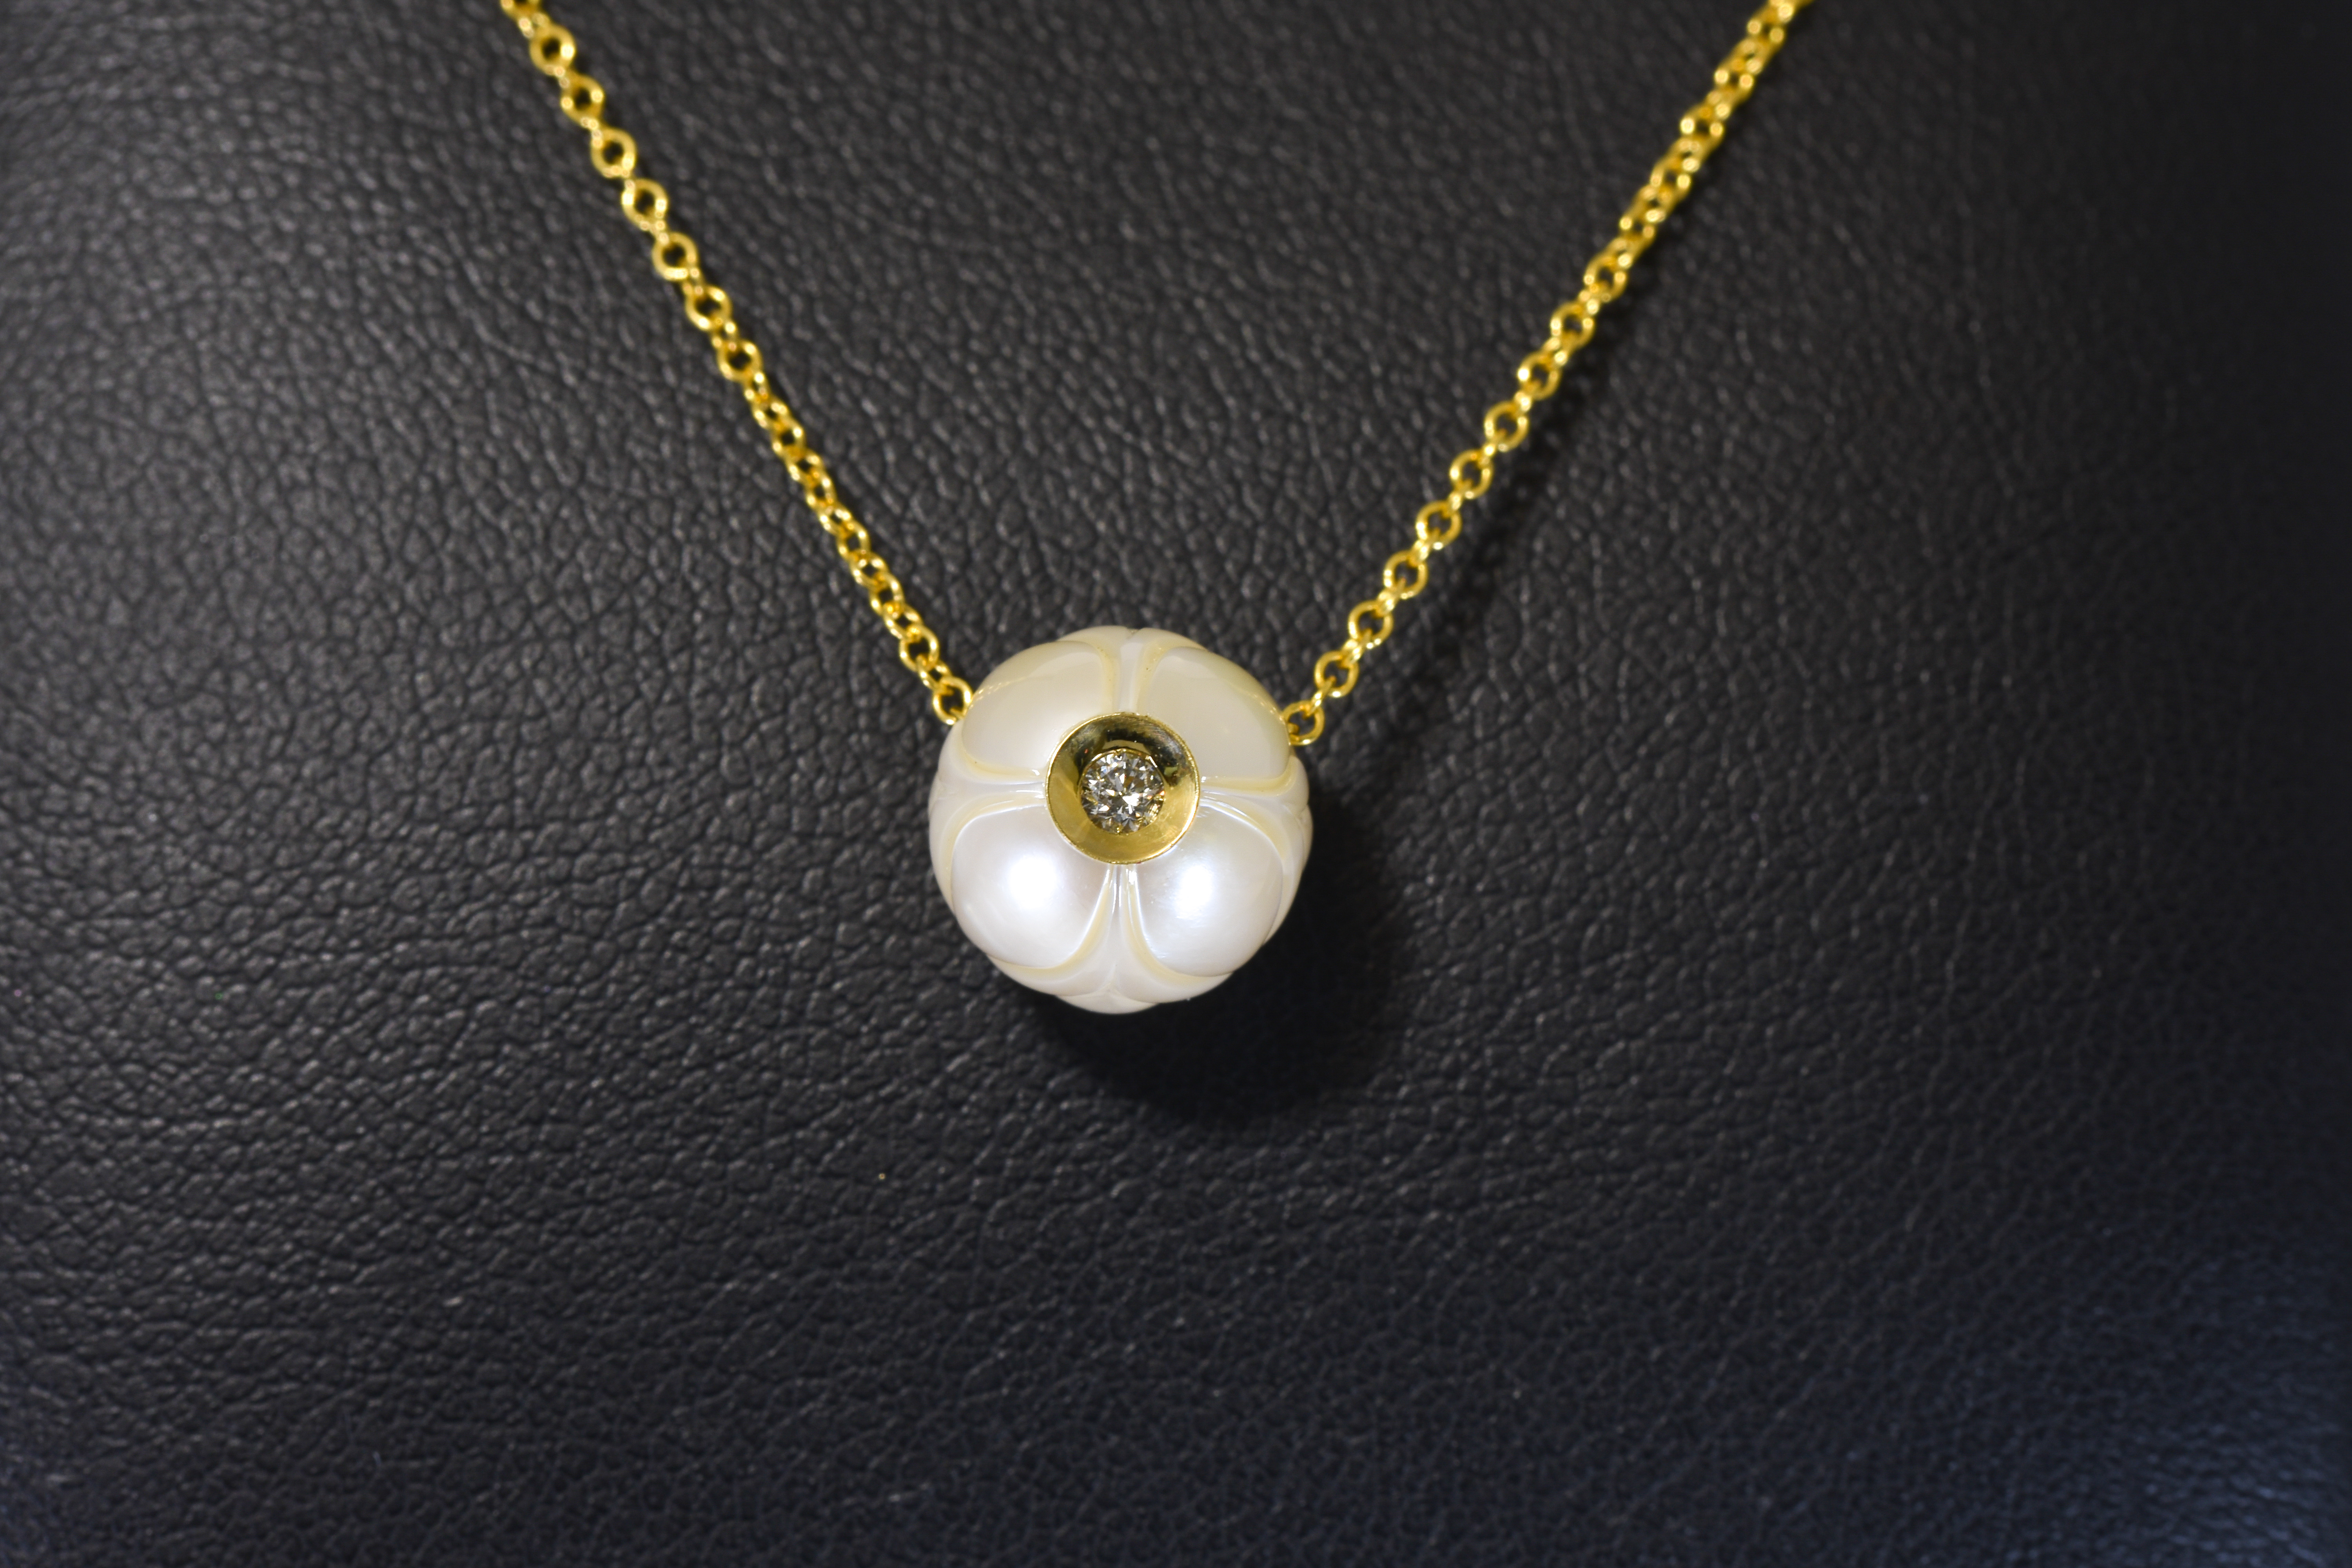 Lady's Yellow Gold Galatea Peach Tulip Pendant With One Round Cream Pearl And One Diamond